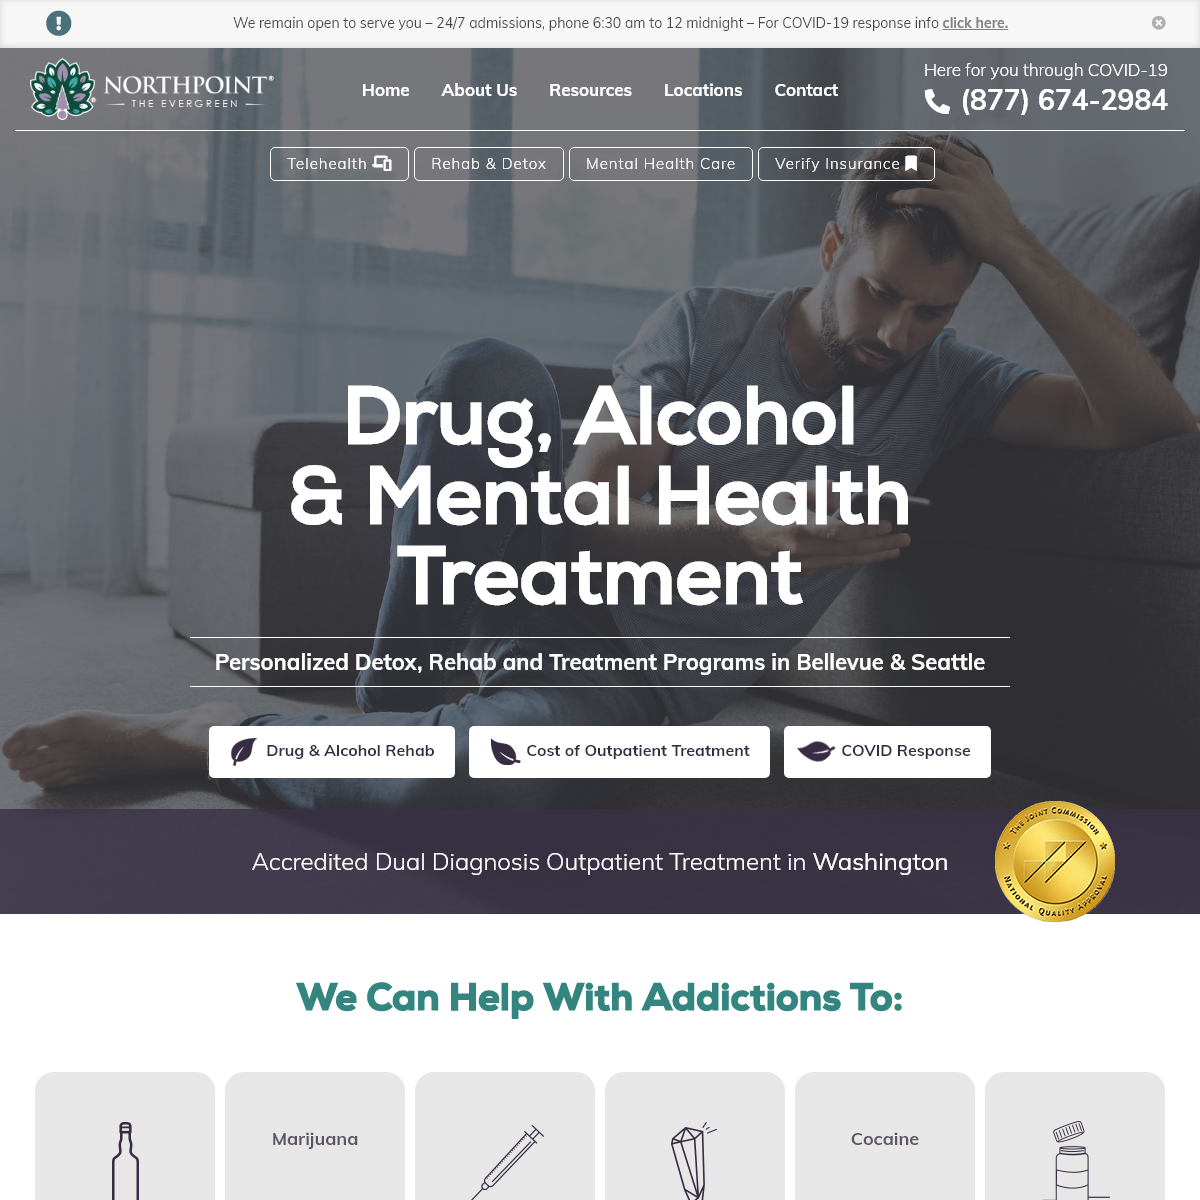 Drug & Alcohol Addiction Counseling Rehab & Treatment in Bellevue